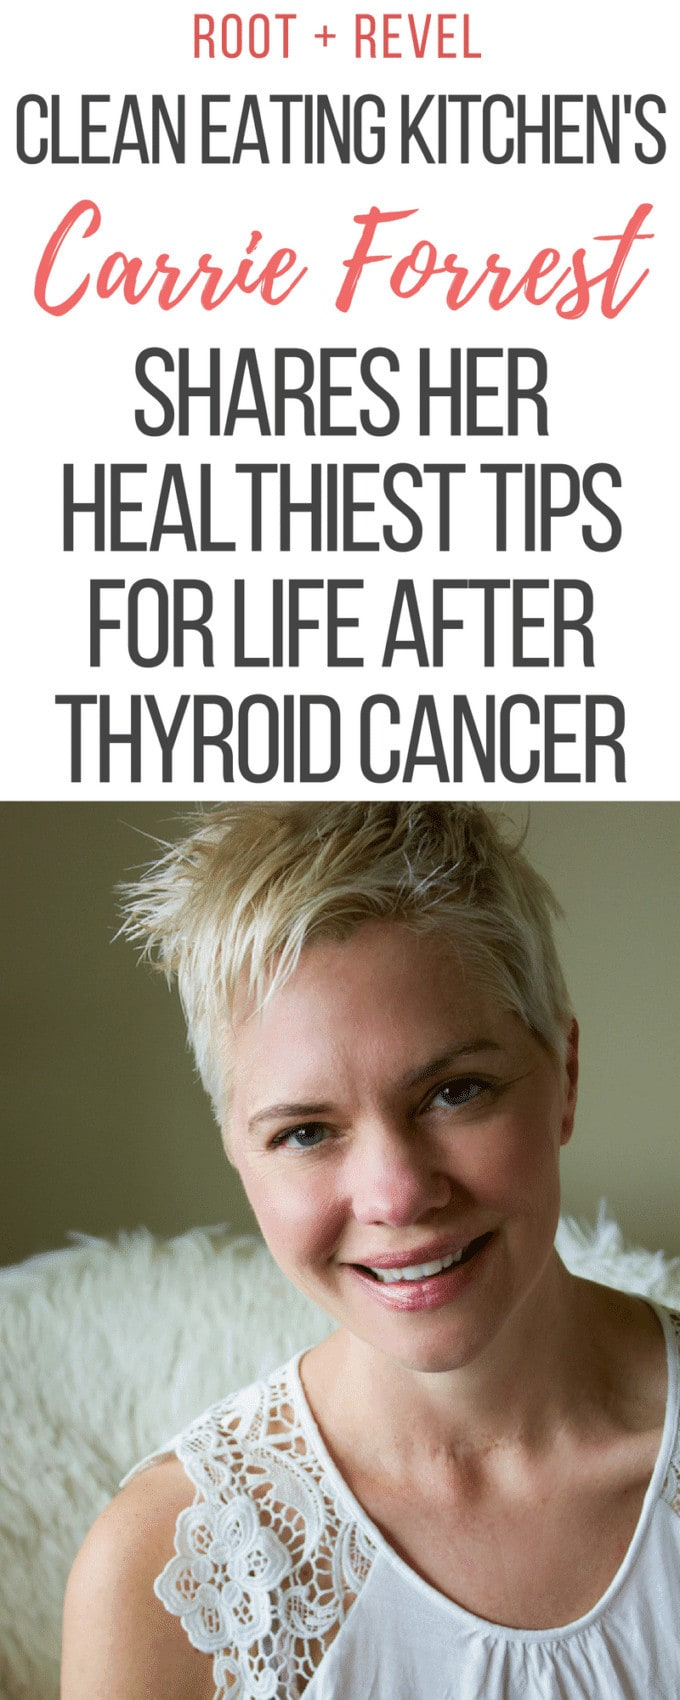 In this inspiring interview, Carrie Forrest--the blogger behind Clean Eating Kitchen and creator of the podcast Clean Eating for Women--shares her healthiest tips for life after thyroid cancer. Carrie has also used a real food diet to recover from and manage multiple health conditions including PCOS, chronic migraines, anxiety and autoimmune disease.